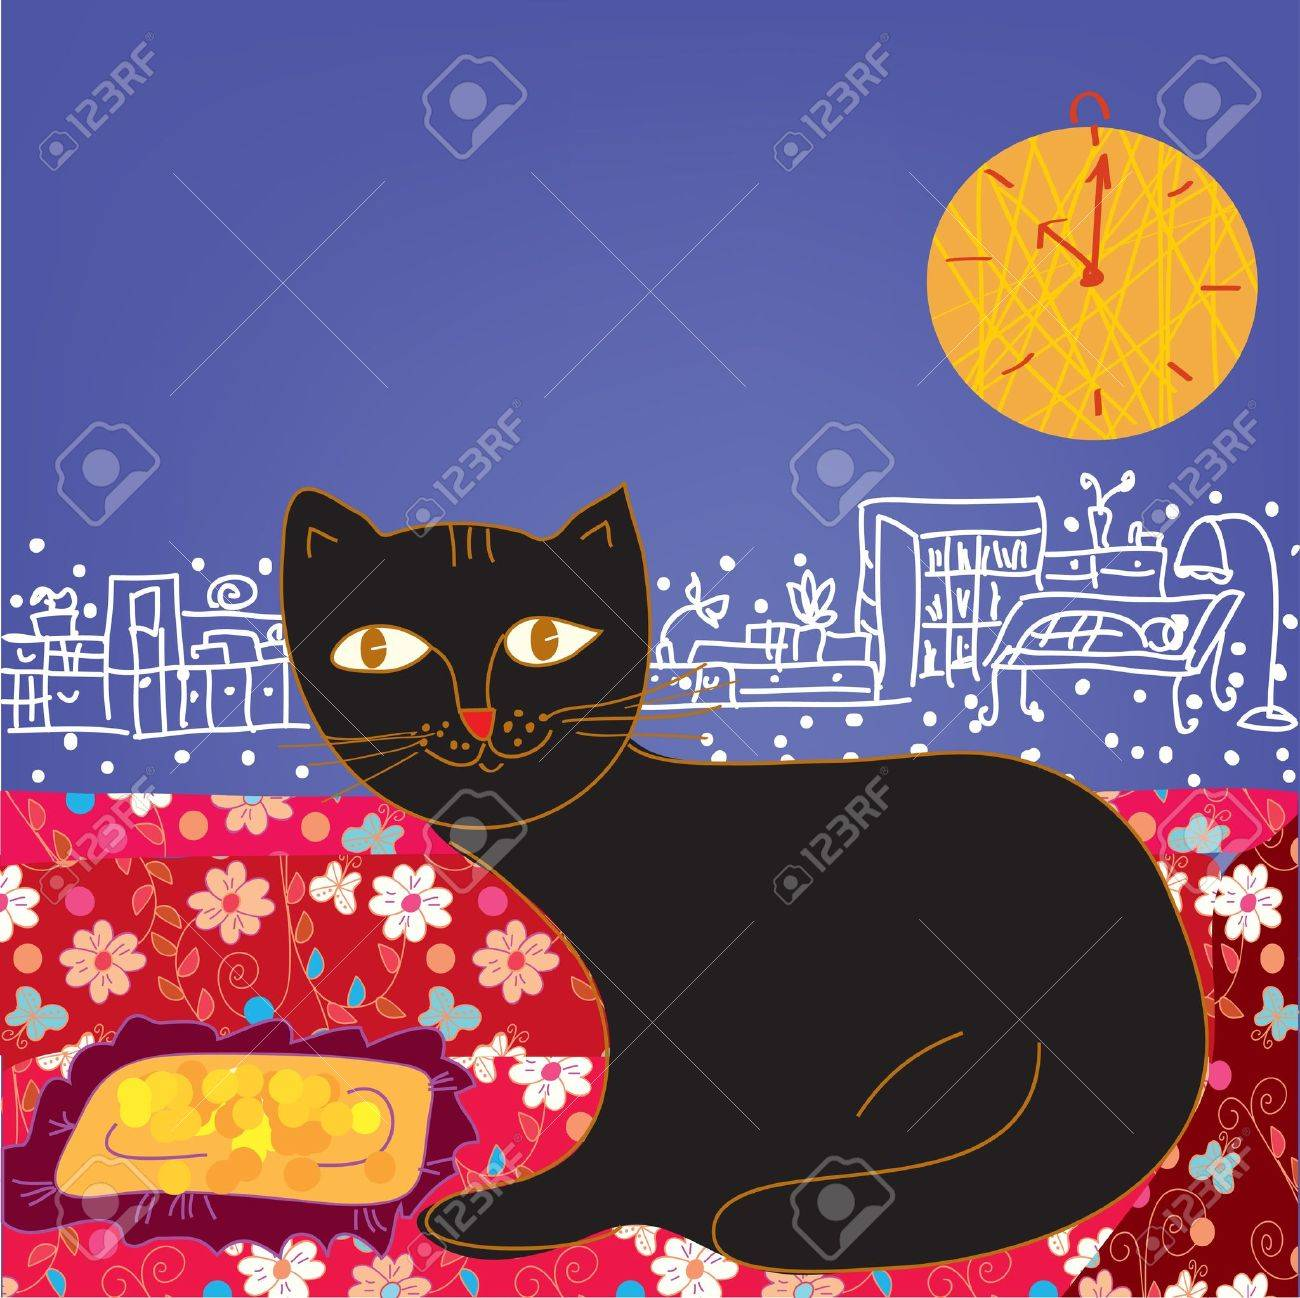 Funny cat in the room cartoon Stock Vector - 12009686